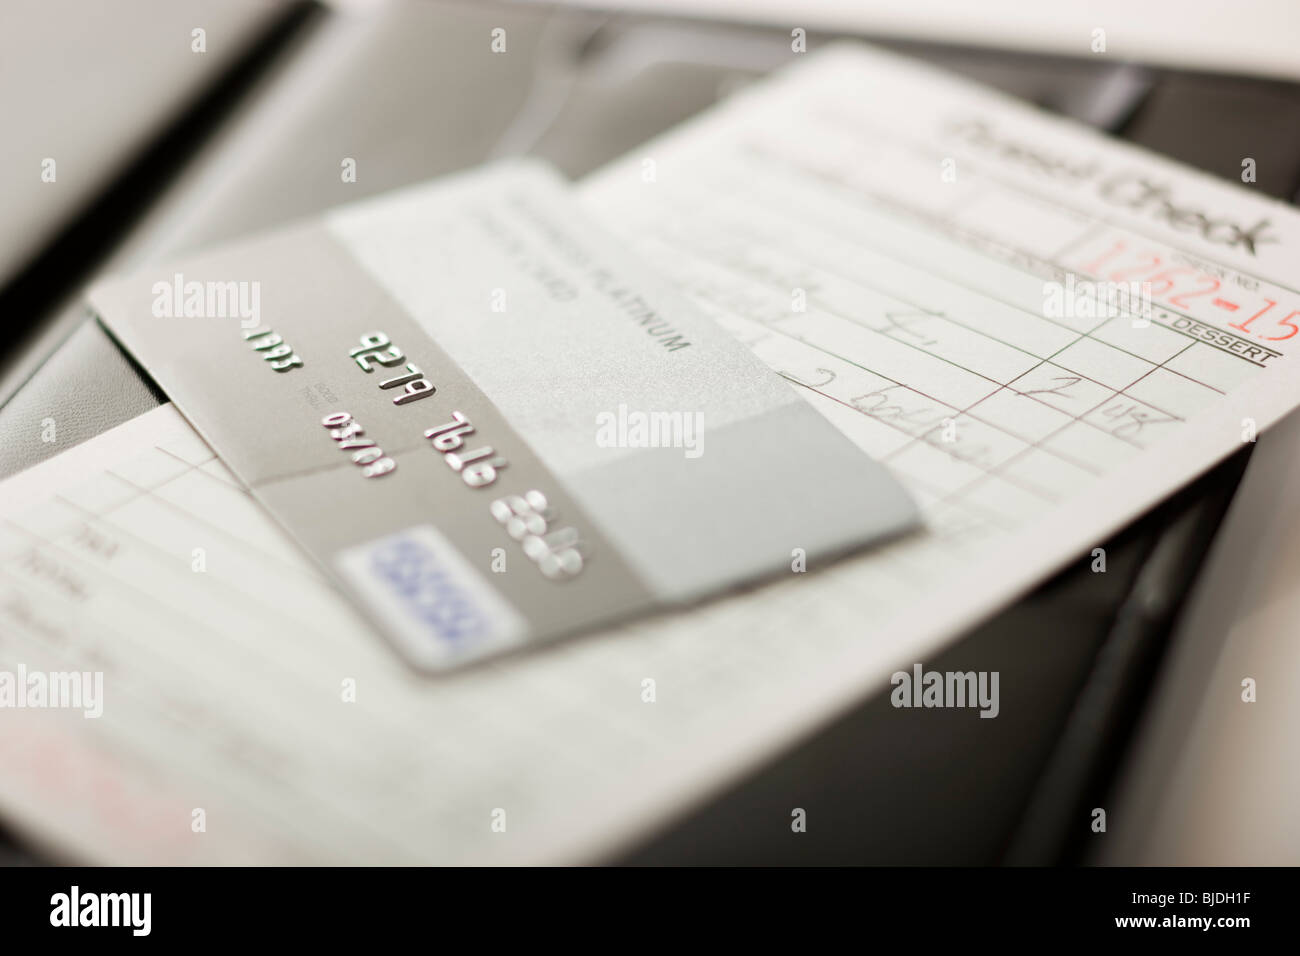 Money Check Stock Photos & Money Check Stock Images - Alamy